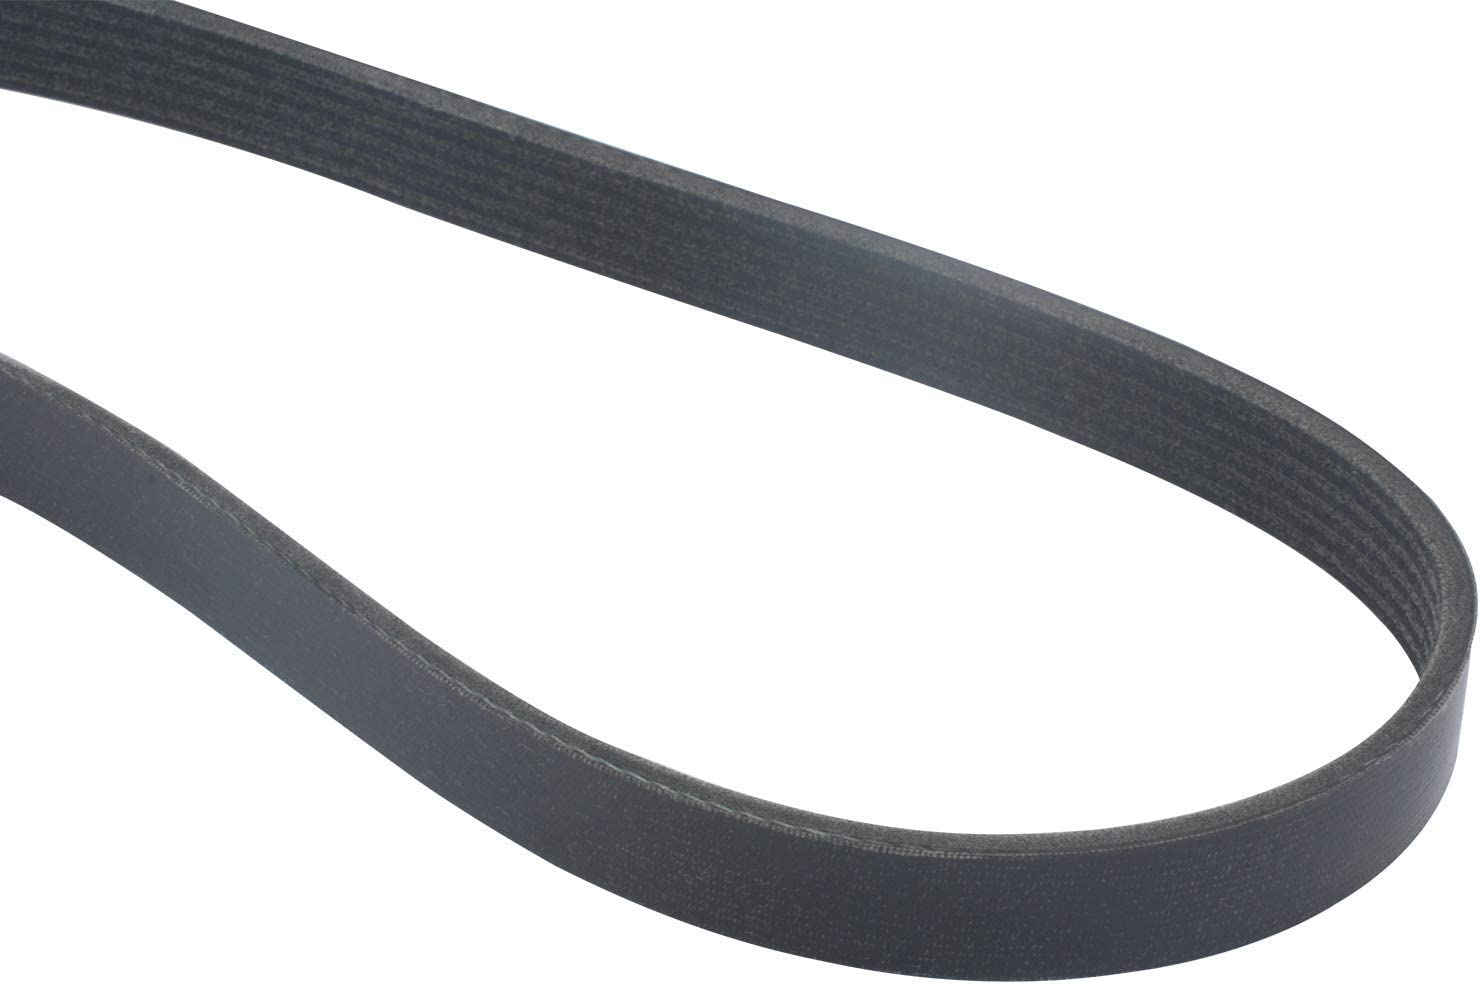 Main Drive Serpentine Belt KBR-5070567 For Honda Accord CR-V Acura TLX ILX